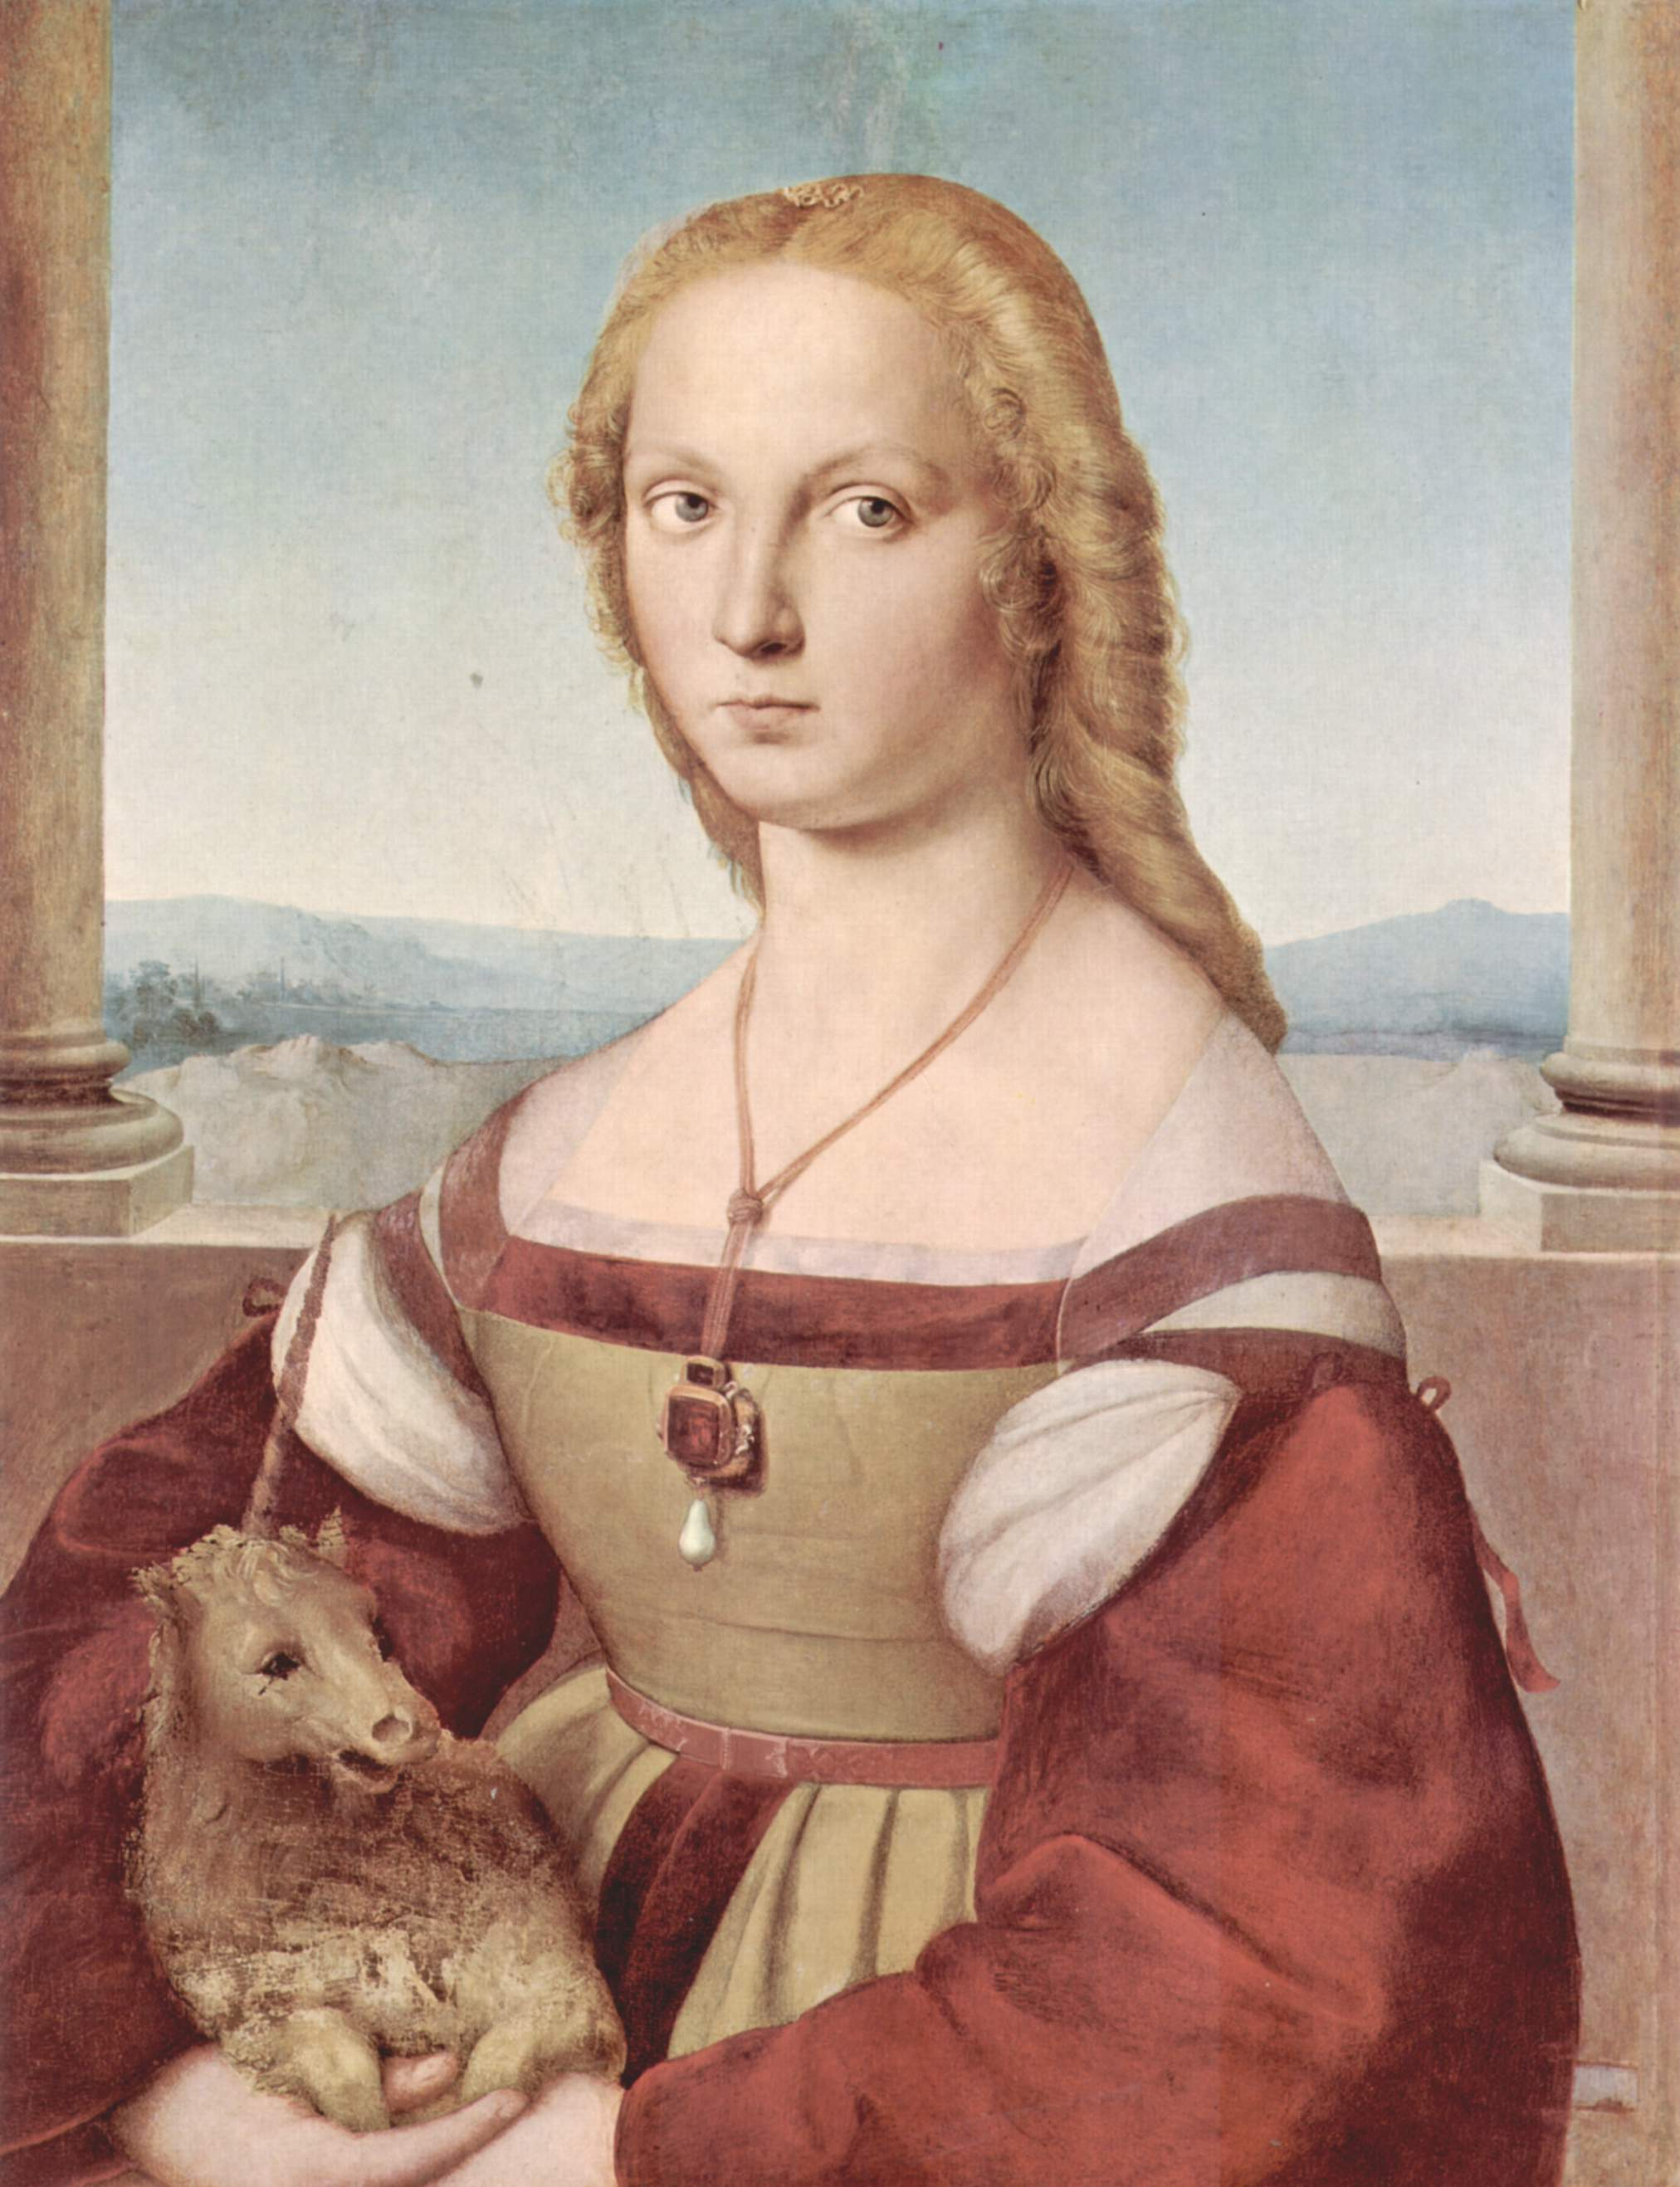 Young Woman with a Unicorn - Borghese Gallery (Rome)